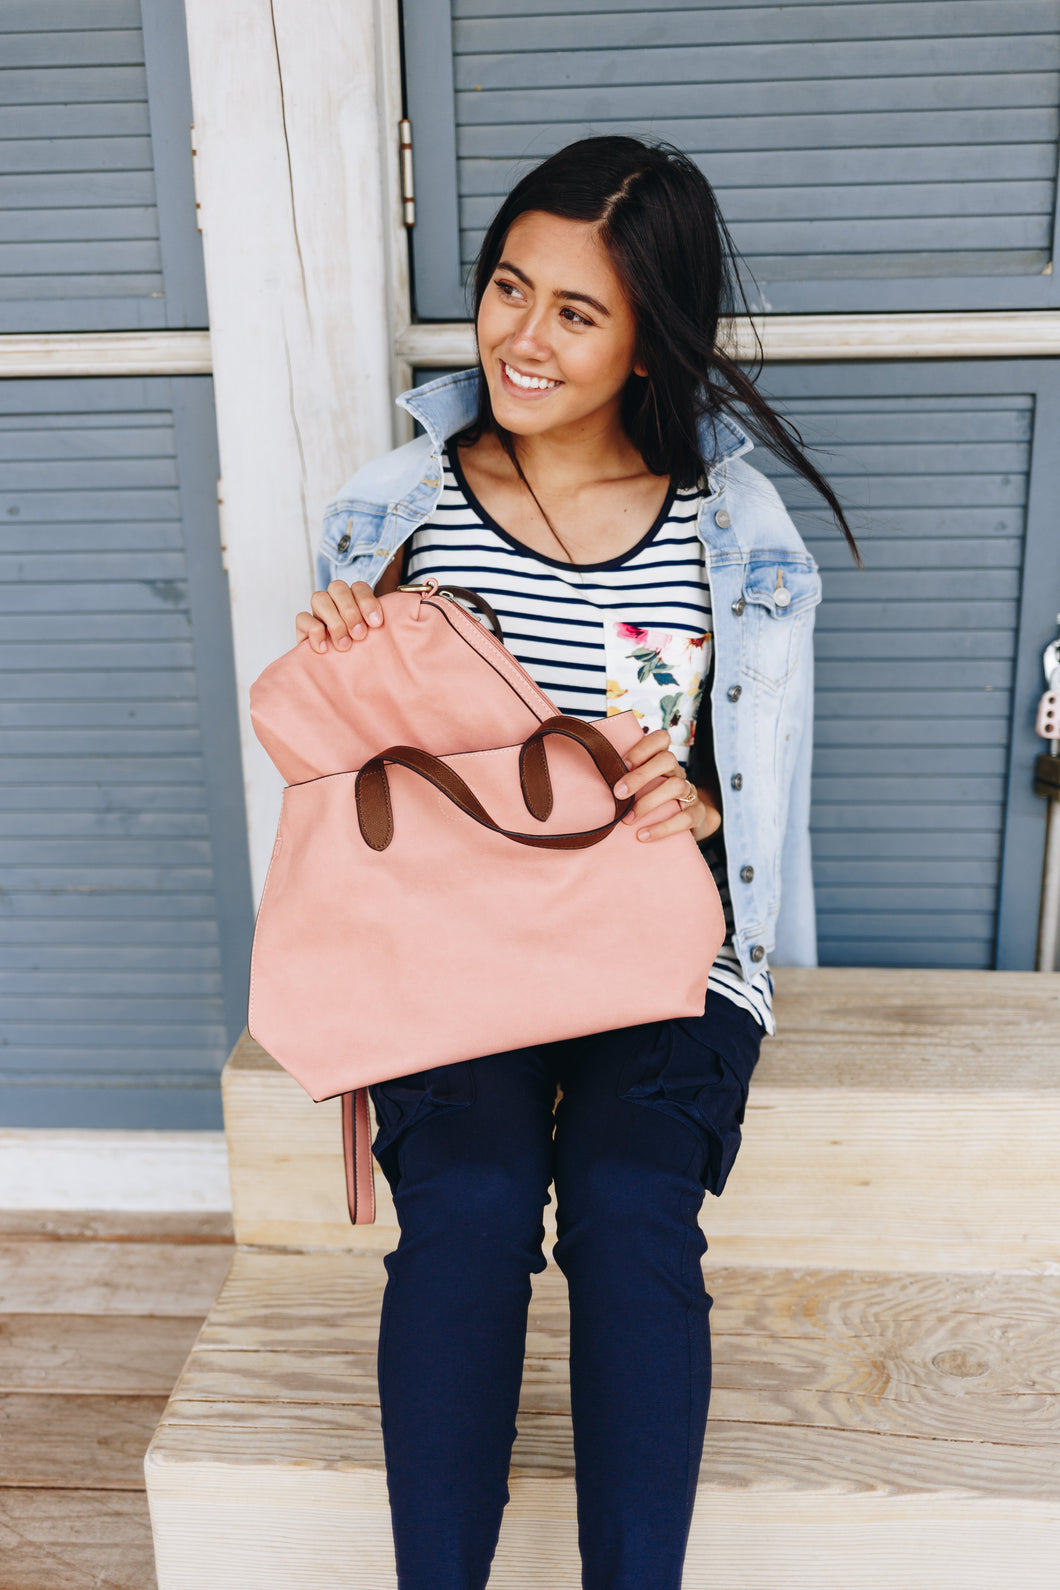 Two-In-One Tote In Pink Lemonade